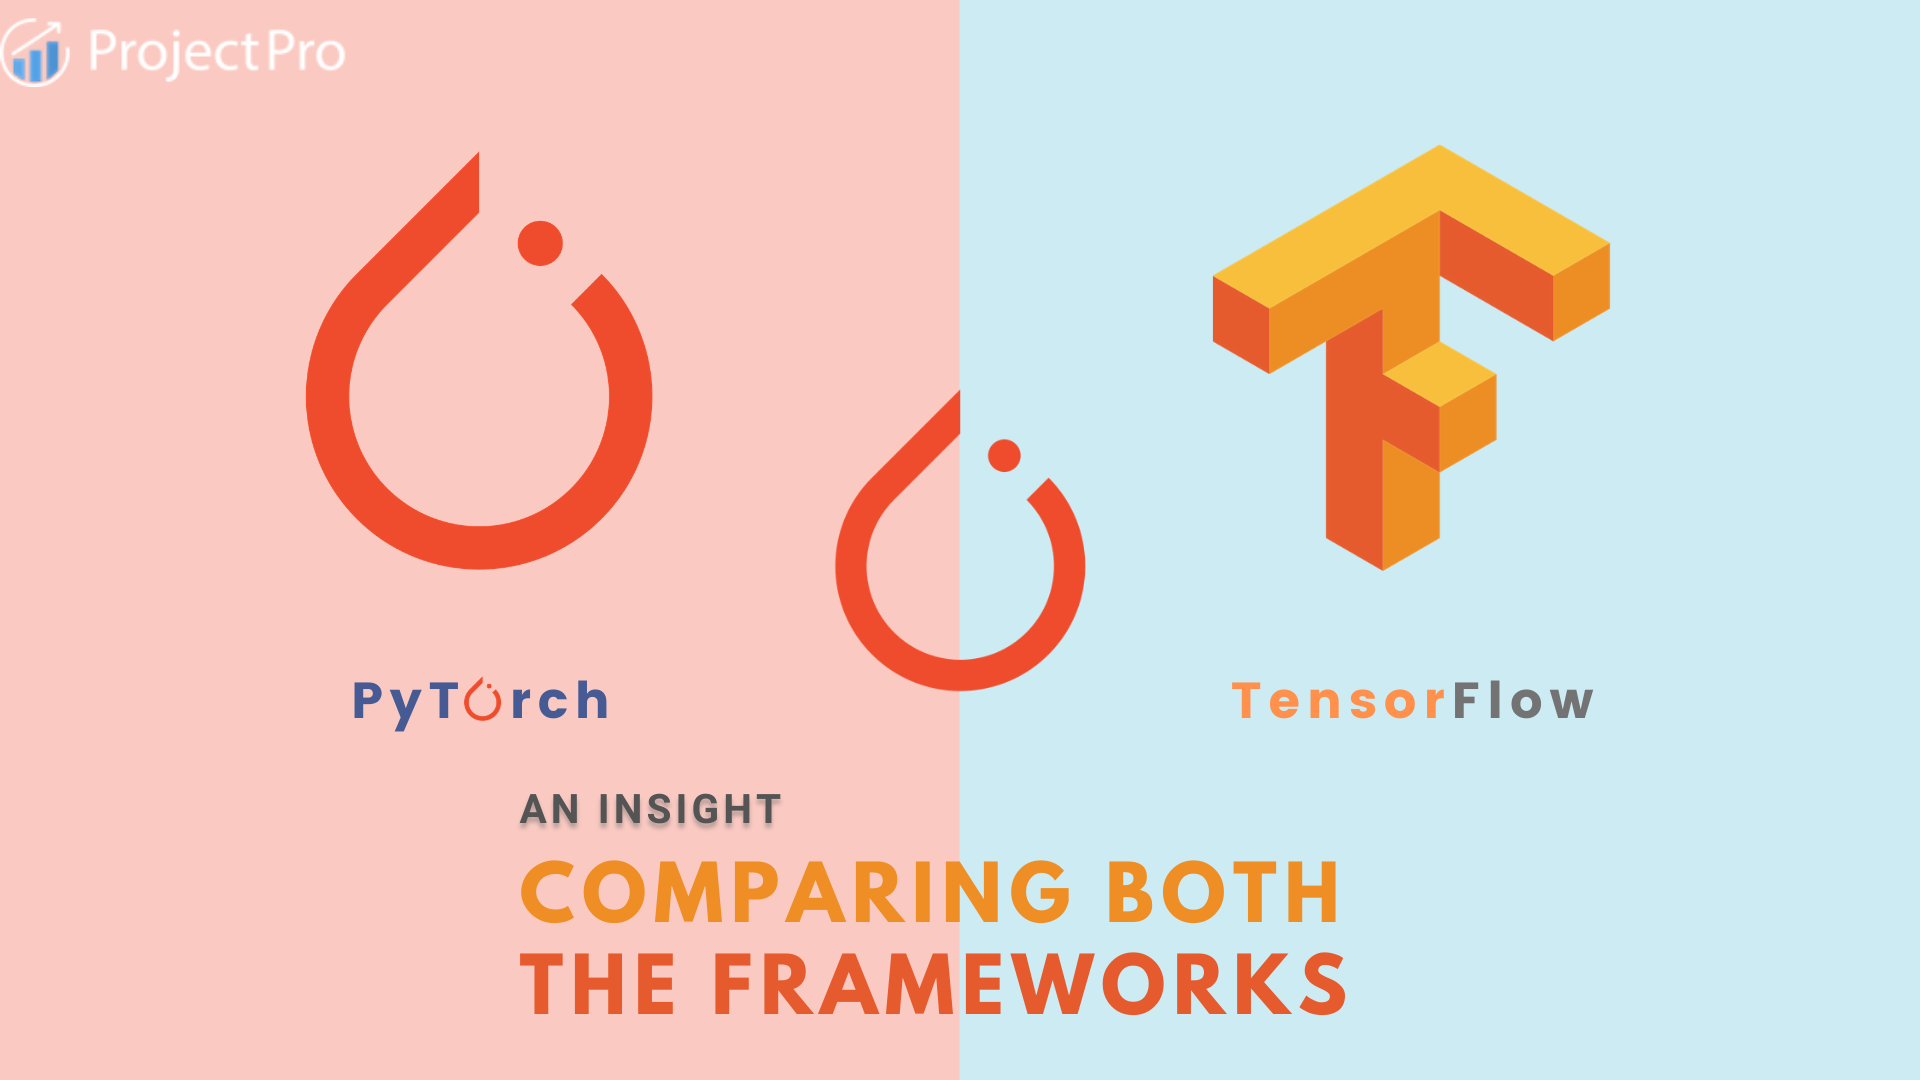 TensorFlow vs PyTorch 2021-Similarities and Differences